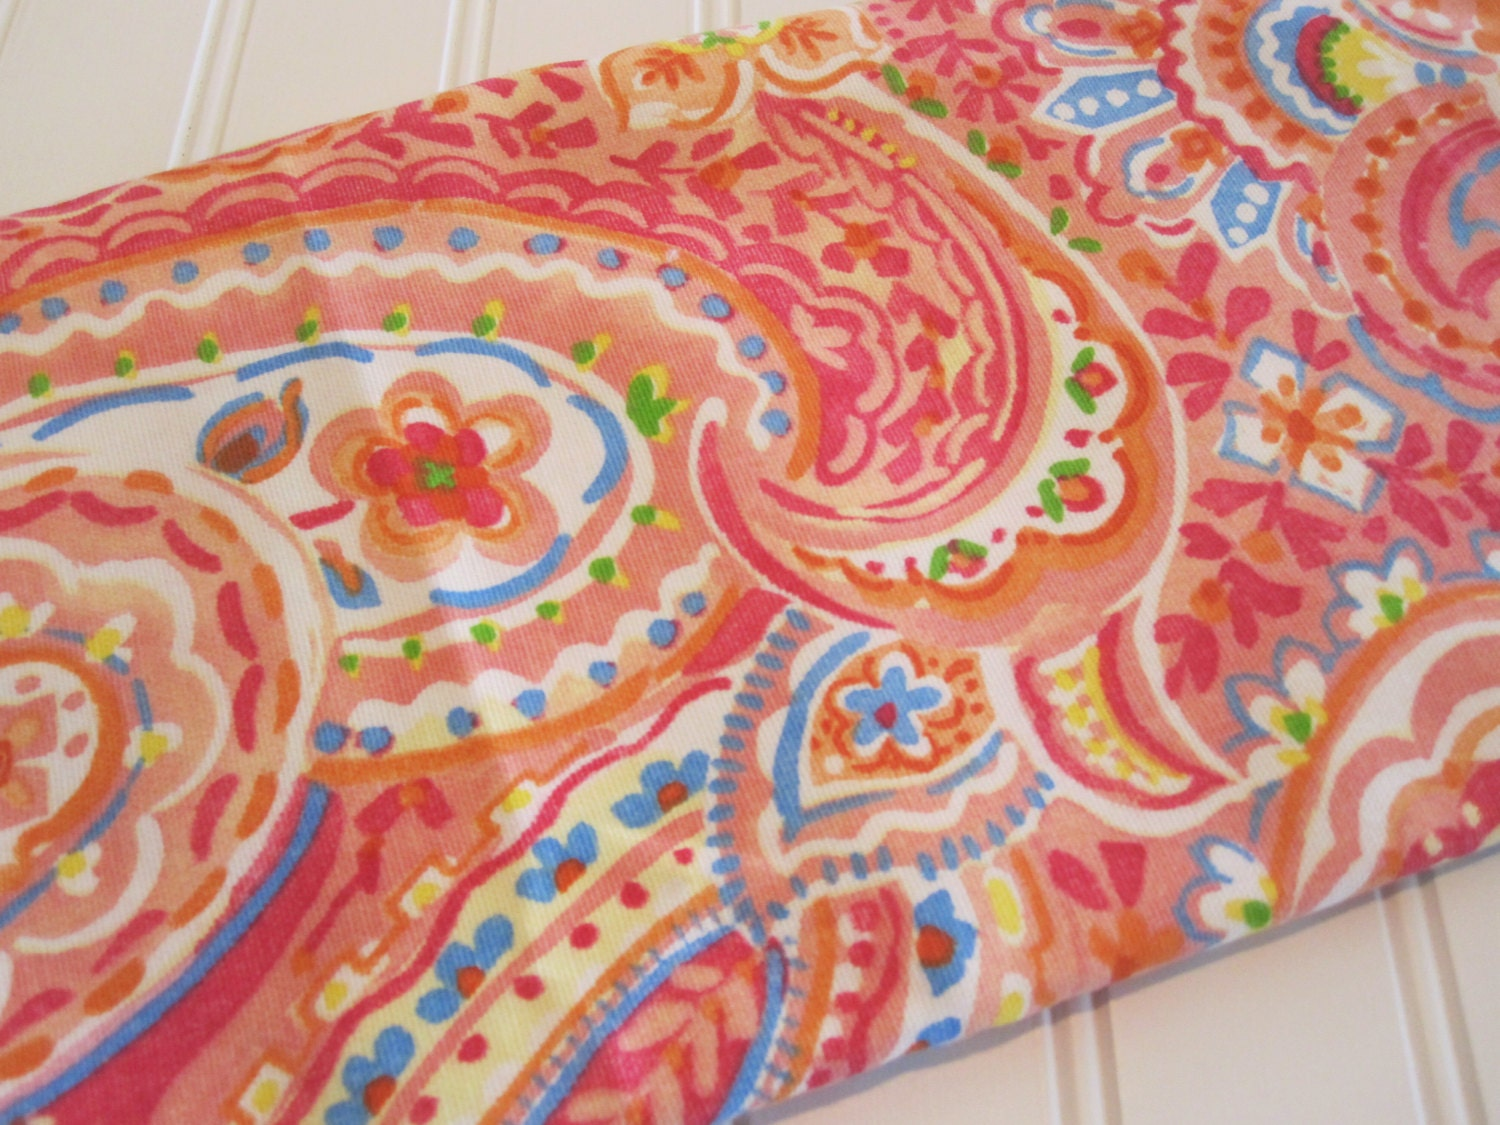 Home Decor Fabric/Waverly Fabric/Paisley Fabric/Pink